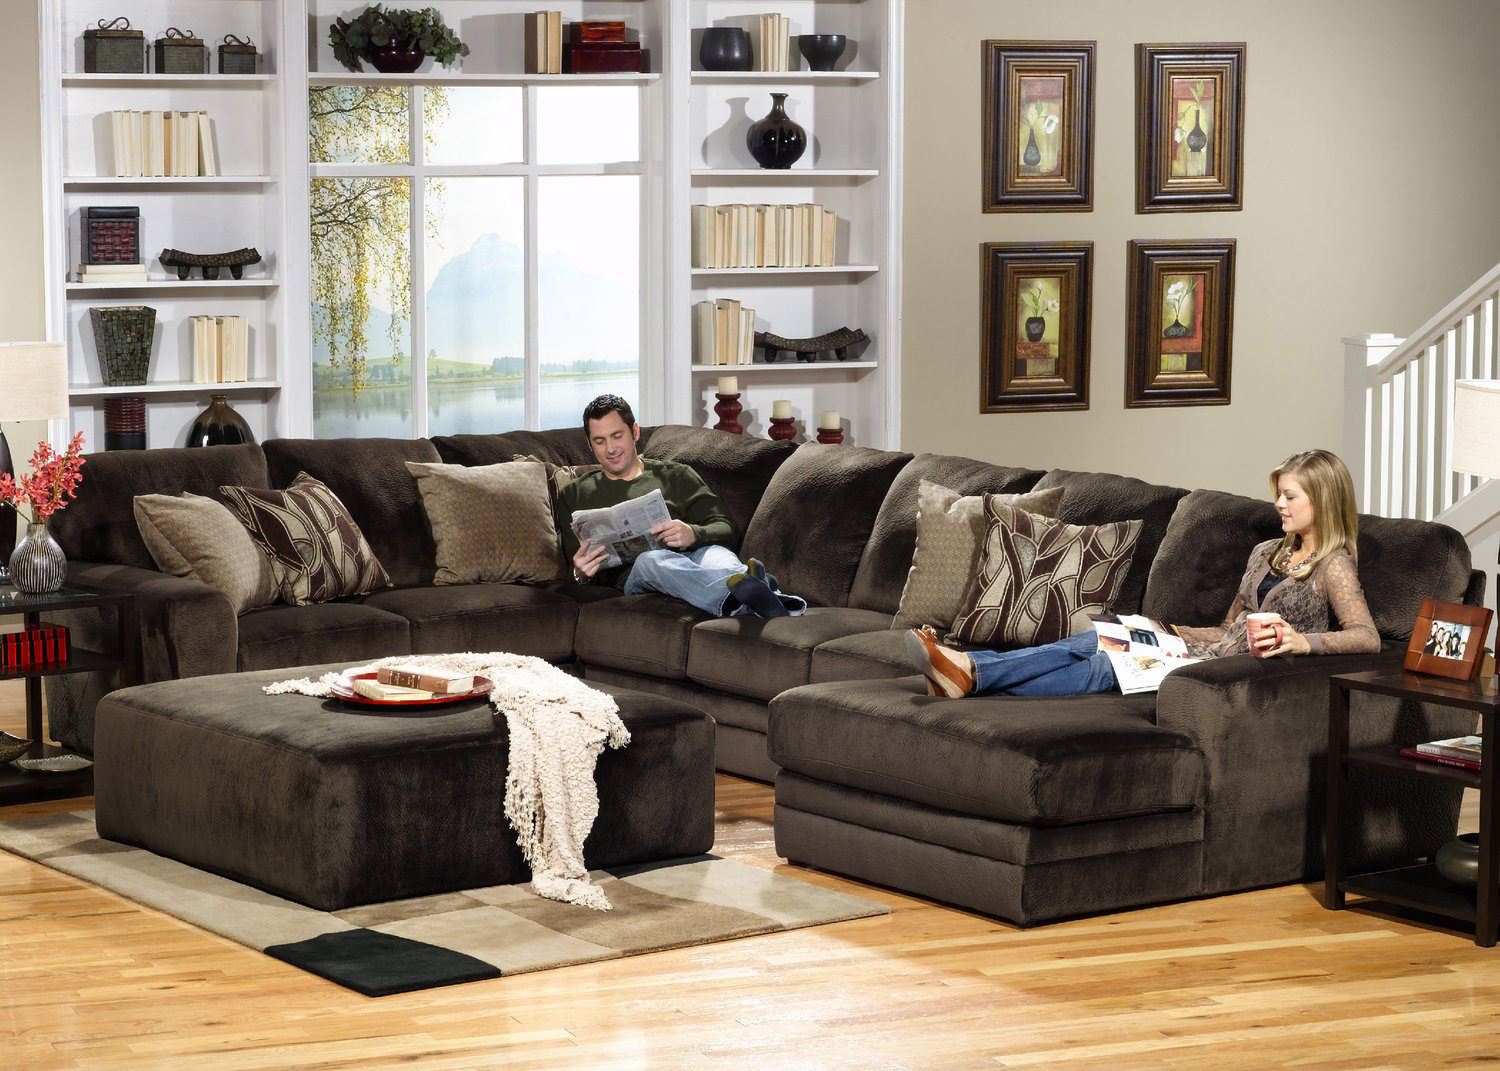 Rainier 3 piece sectional hom furniture - Family living room ideas ...